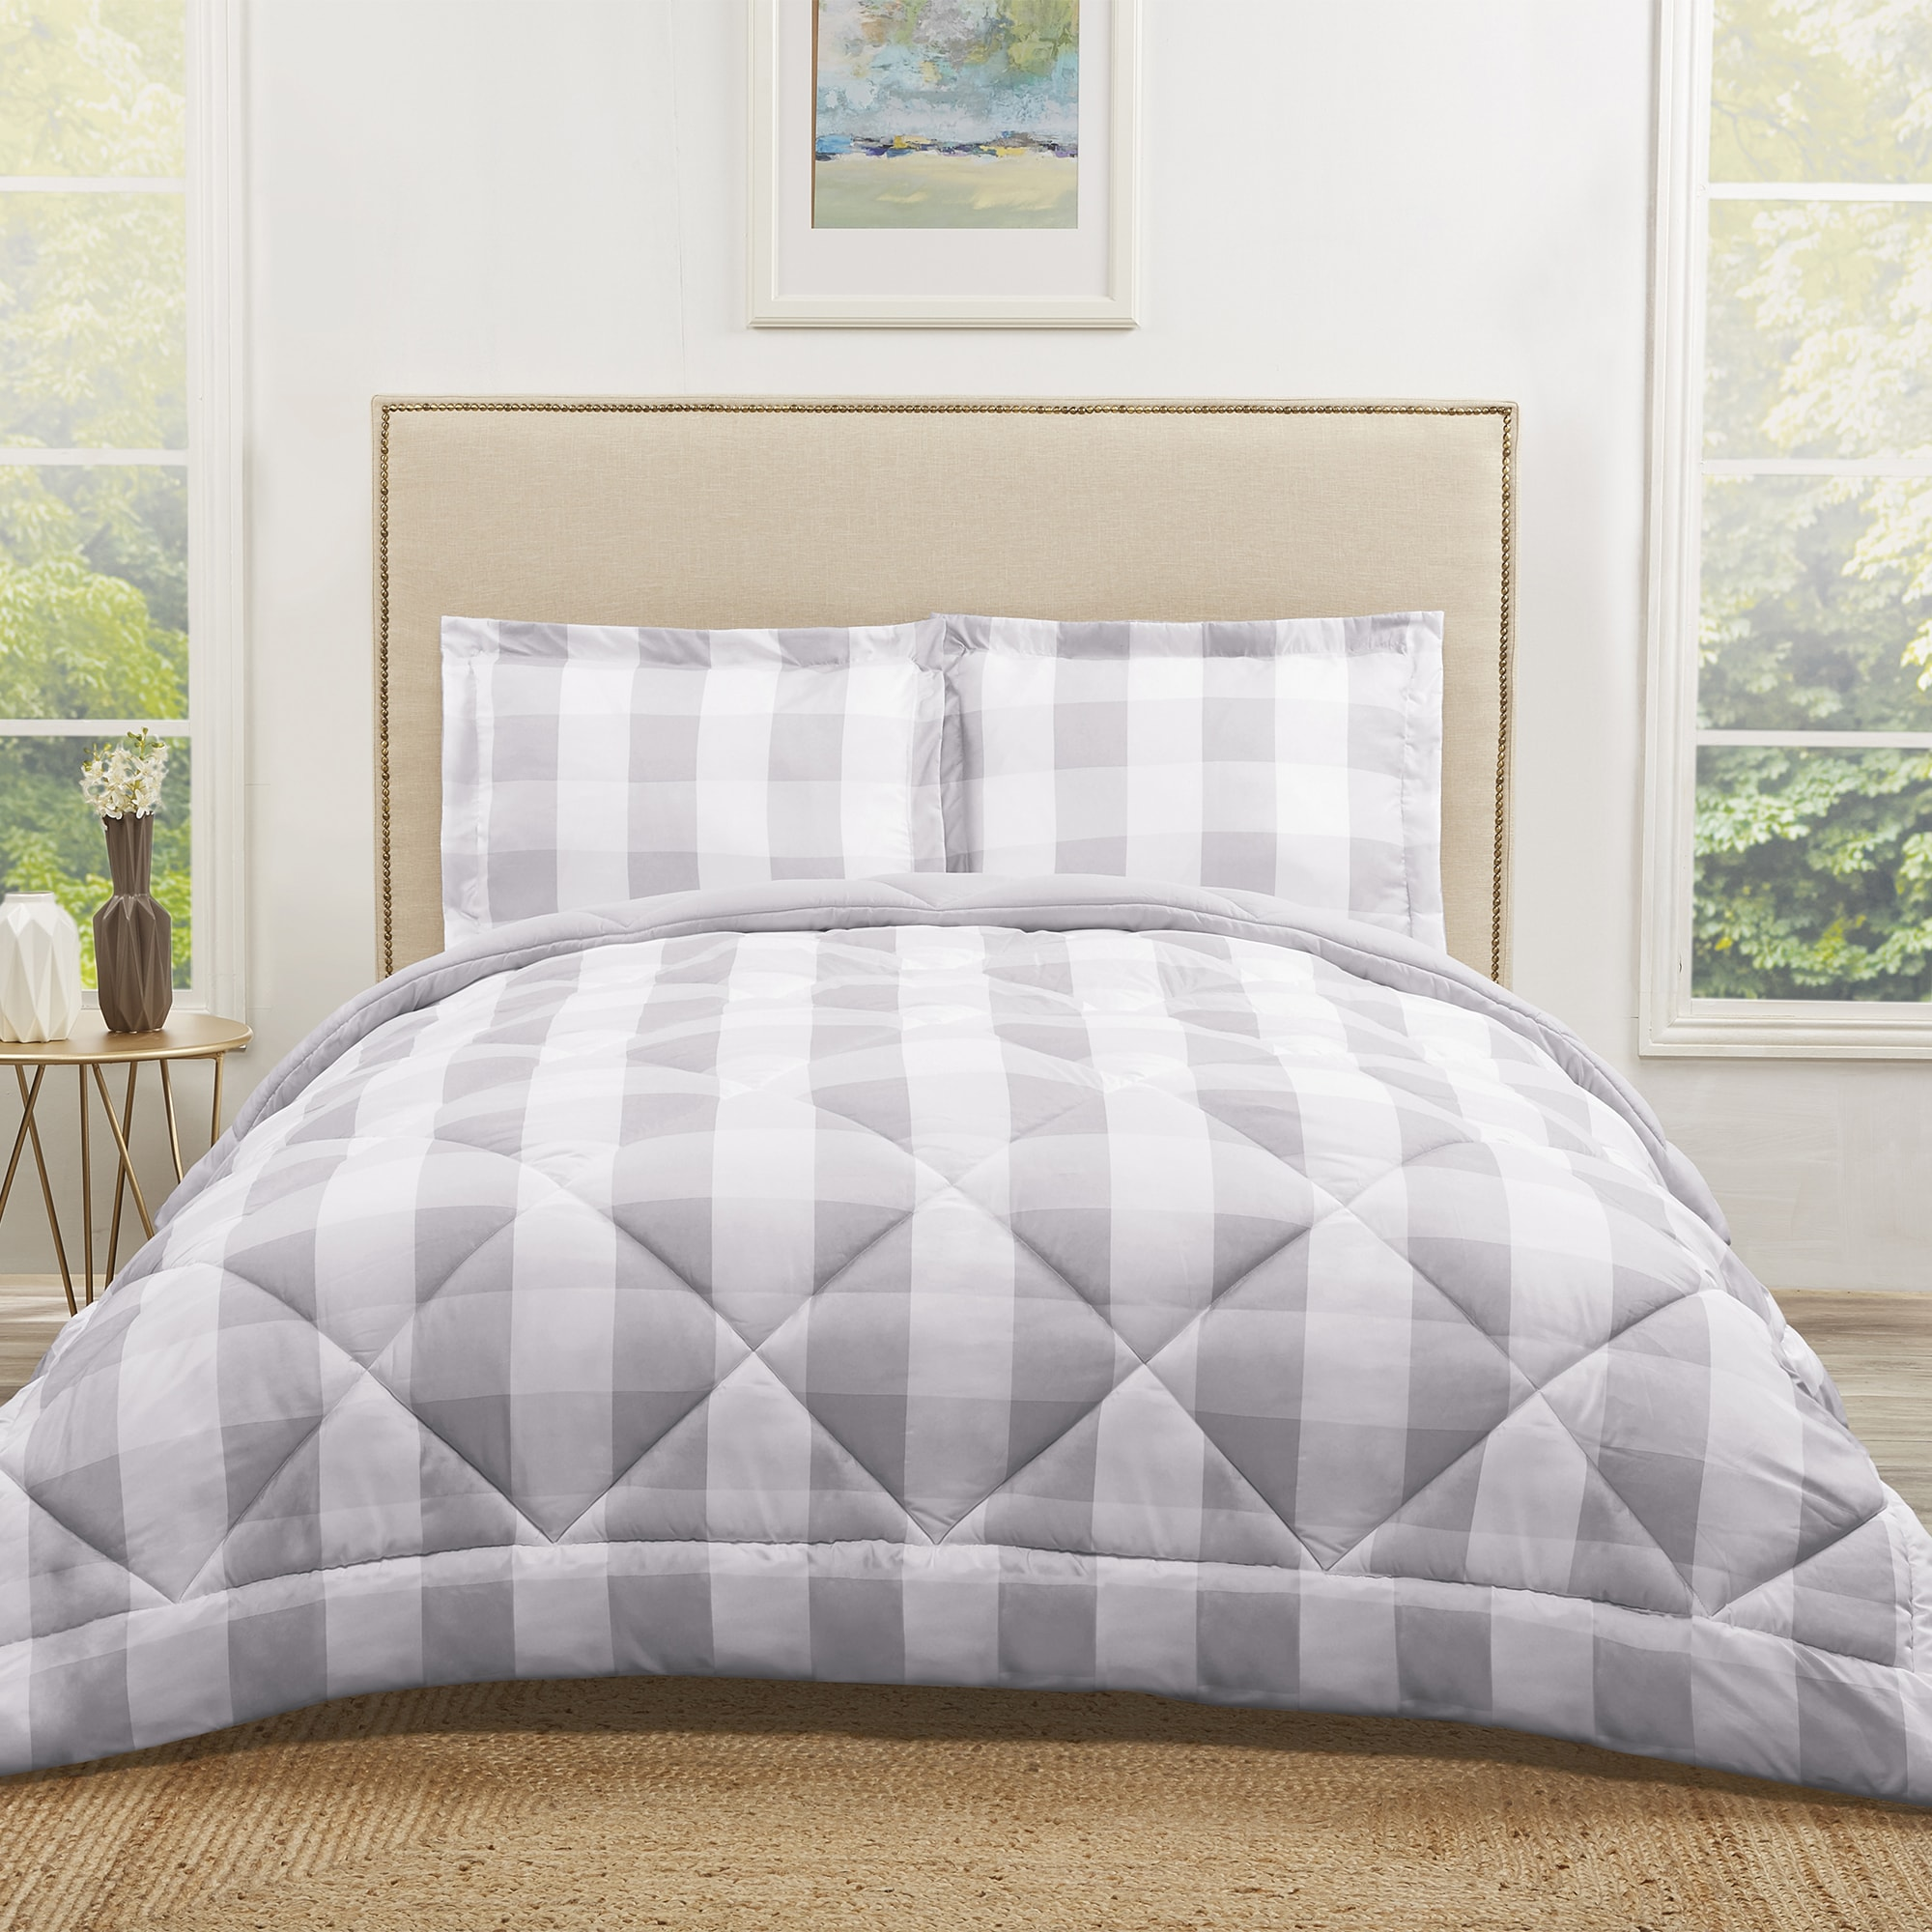 designs pad khaki bedding closeout randi canada bella ar design about buffalo check ikea images nice set home unusual park black pinterest twin after snazzy tan red my before bachelor pink plaid reveal blue first garrett comforter on